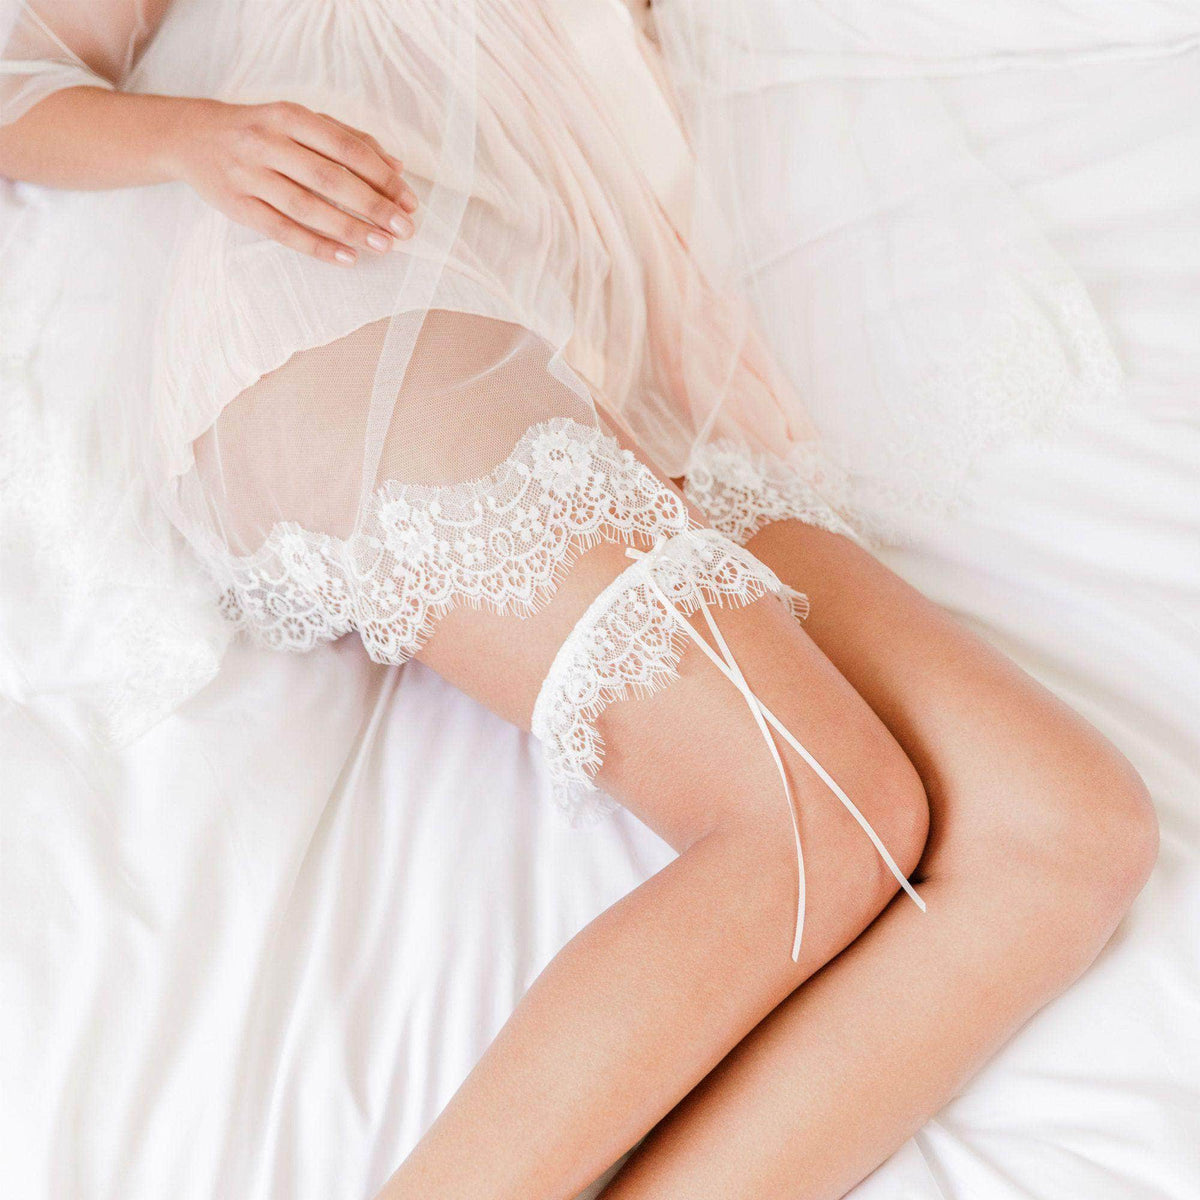 Wedding Garter Eyelash lace wedding garter with delicate satin bow- 'Kayla'